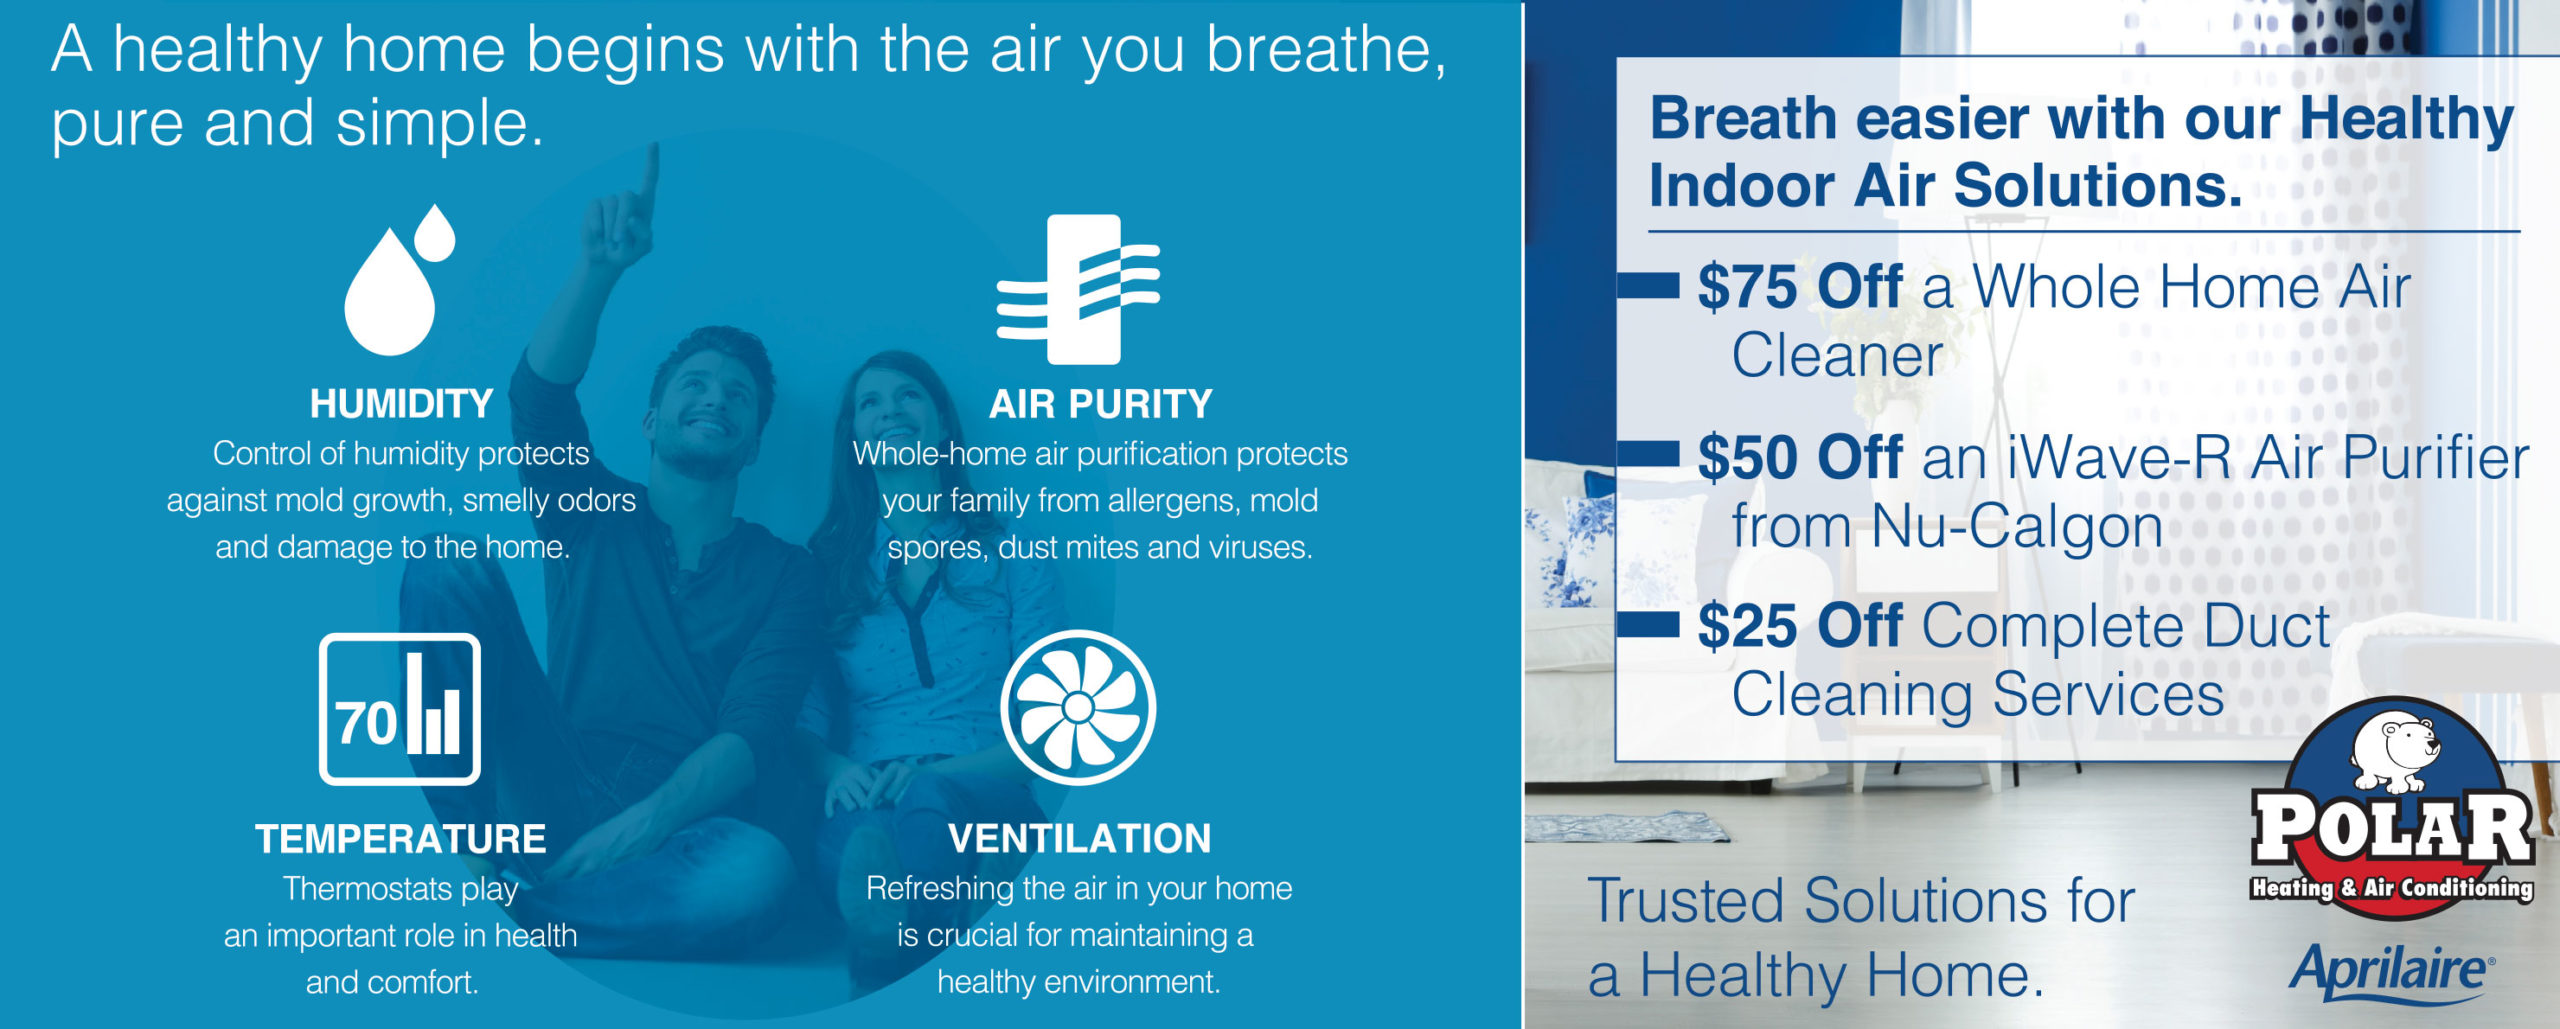 Chicago indoor air quality services. Remove viruses, bacteria, mold and more from indoor air.